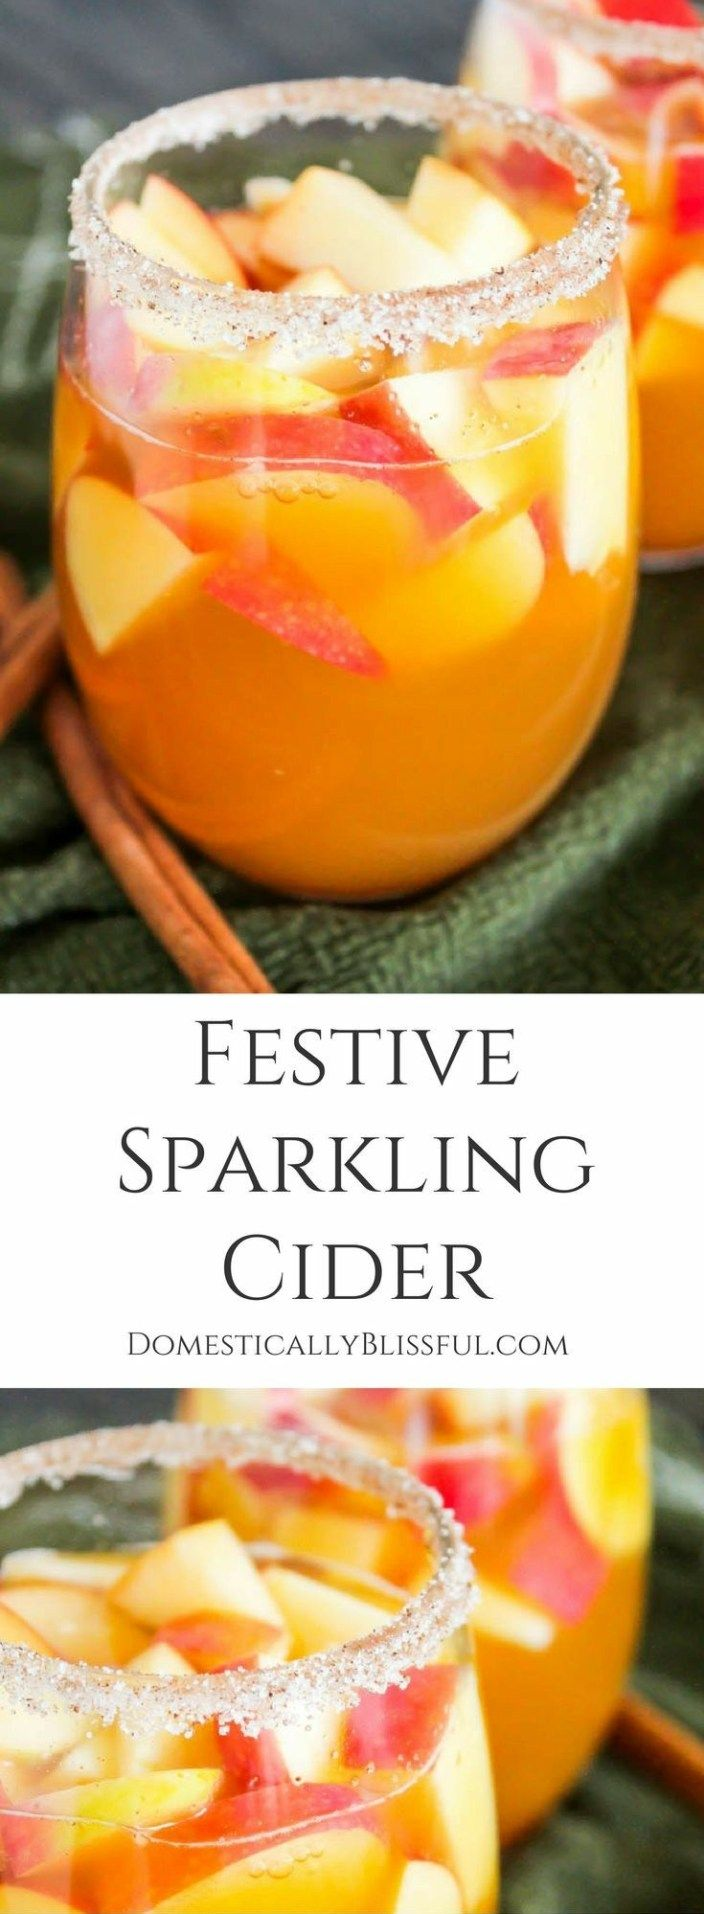 32 Non-Alcoholic Christmas Drinks Great for Parties #thanksgivingdrinksalcohol